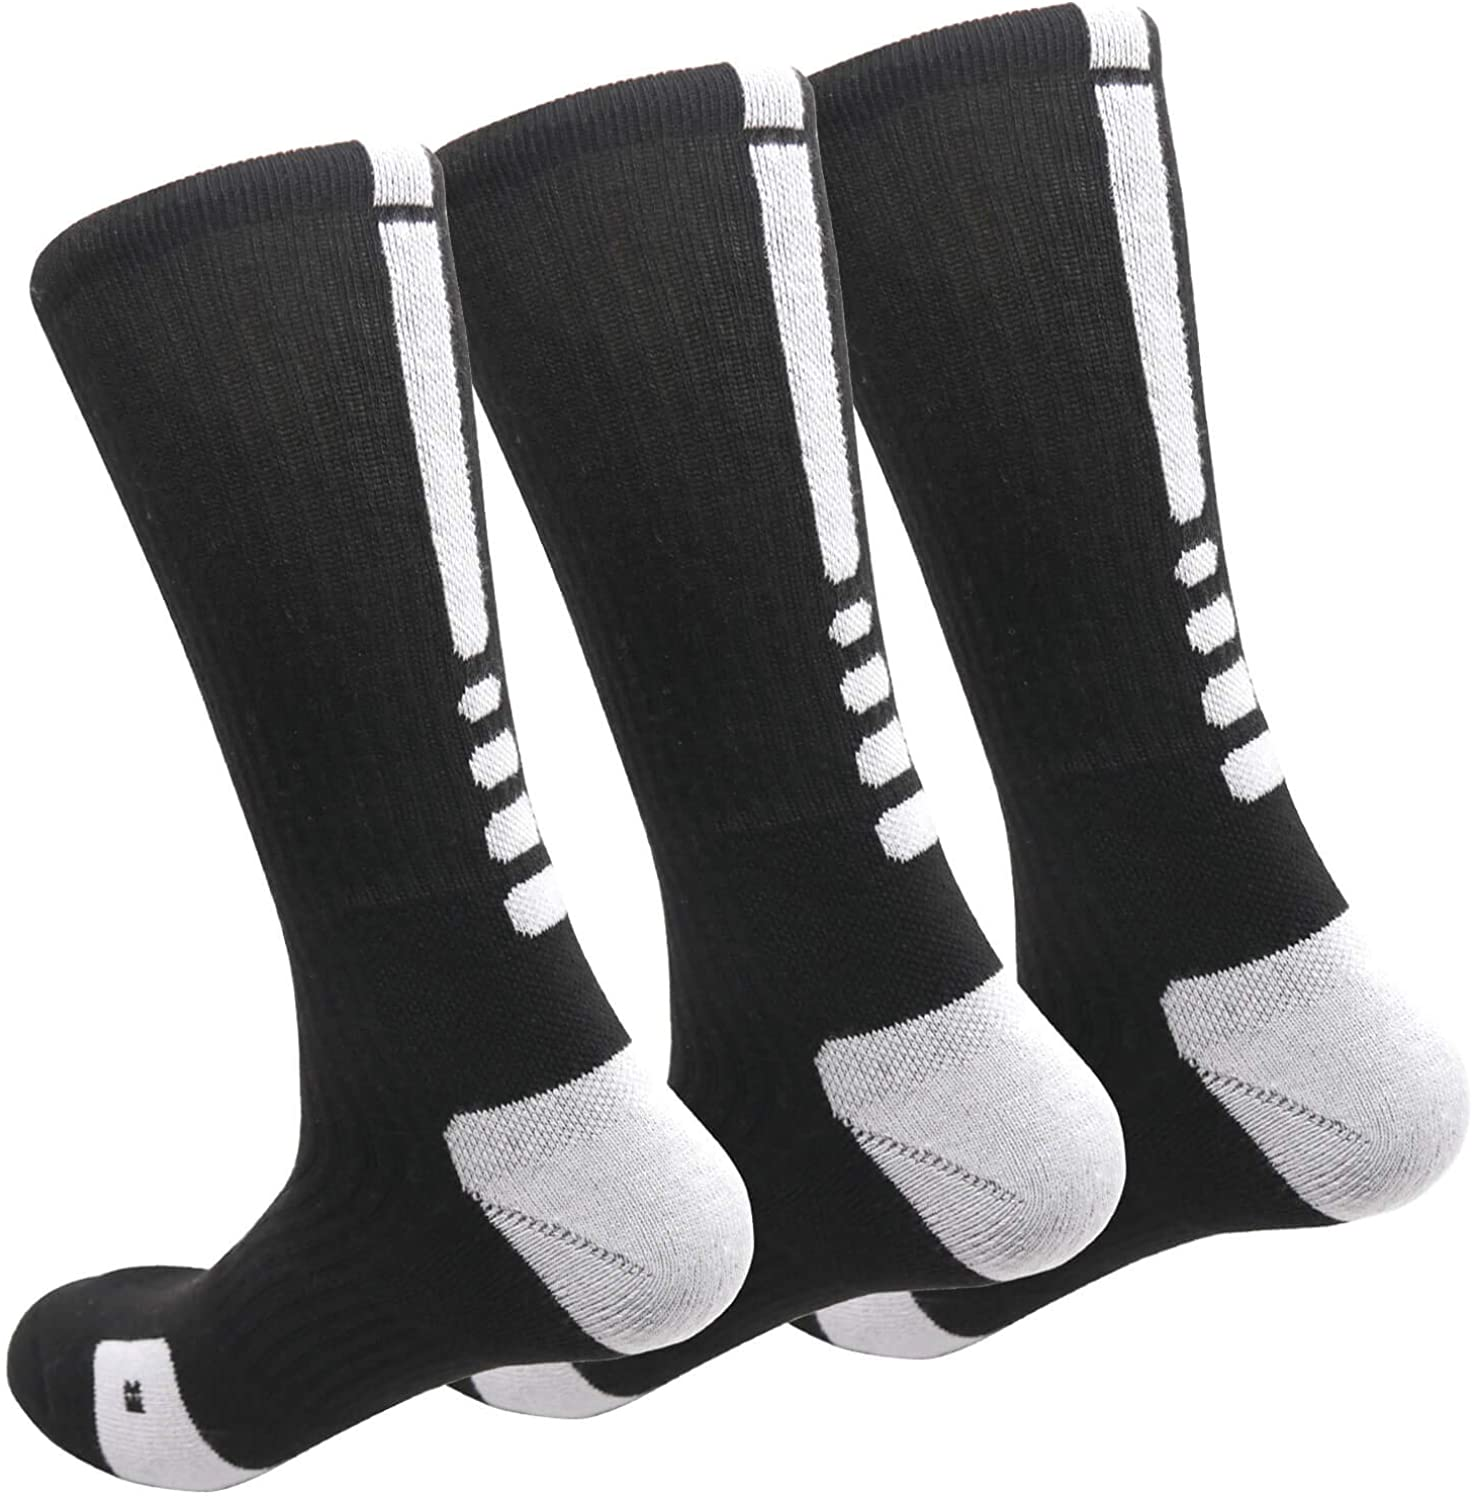 MUMUBREAL Elite Basketball Socks Cushioned Athletic Crew Socks Thick Compression Sports Socks for Men & Women